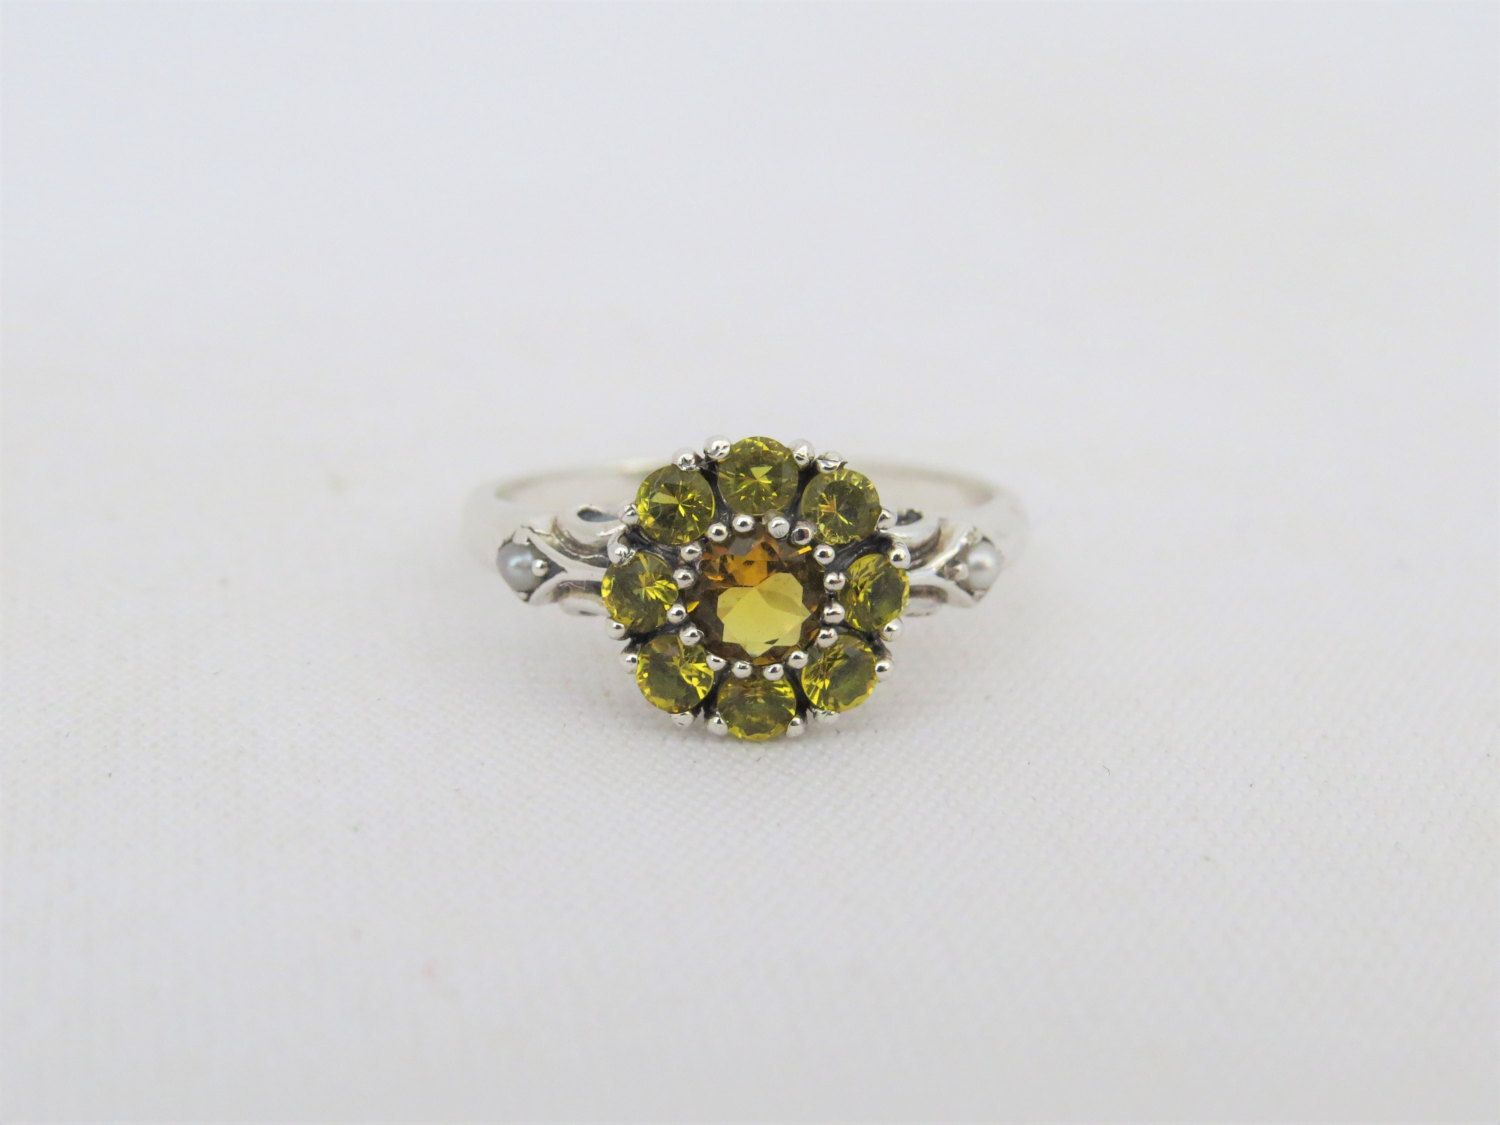 Vintage Sterling Silver Natural Citrine & Seed Pearl Flower Ring Size 8 by JewelryEmpire14 on Etsy